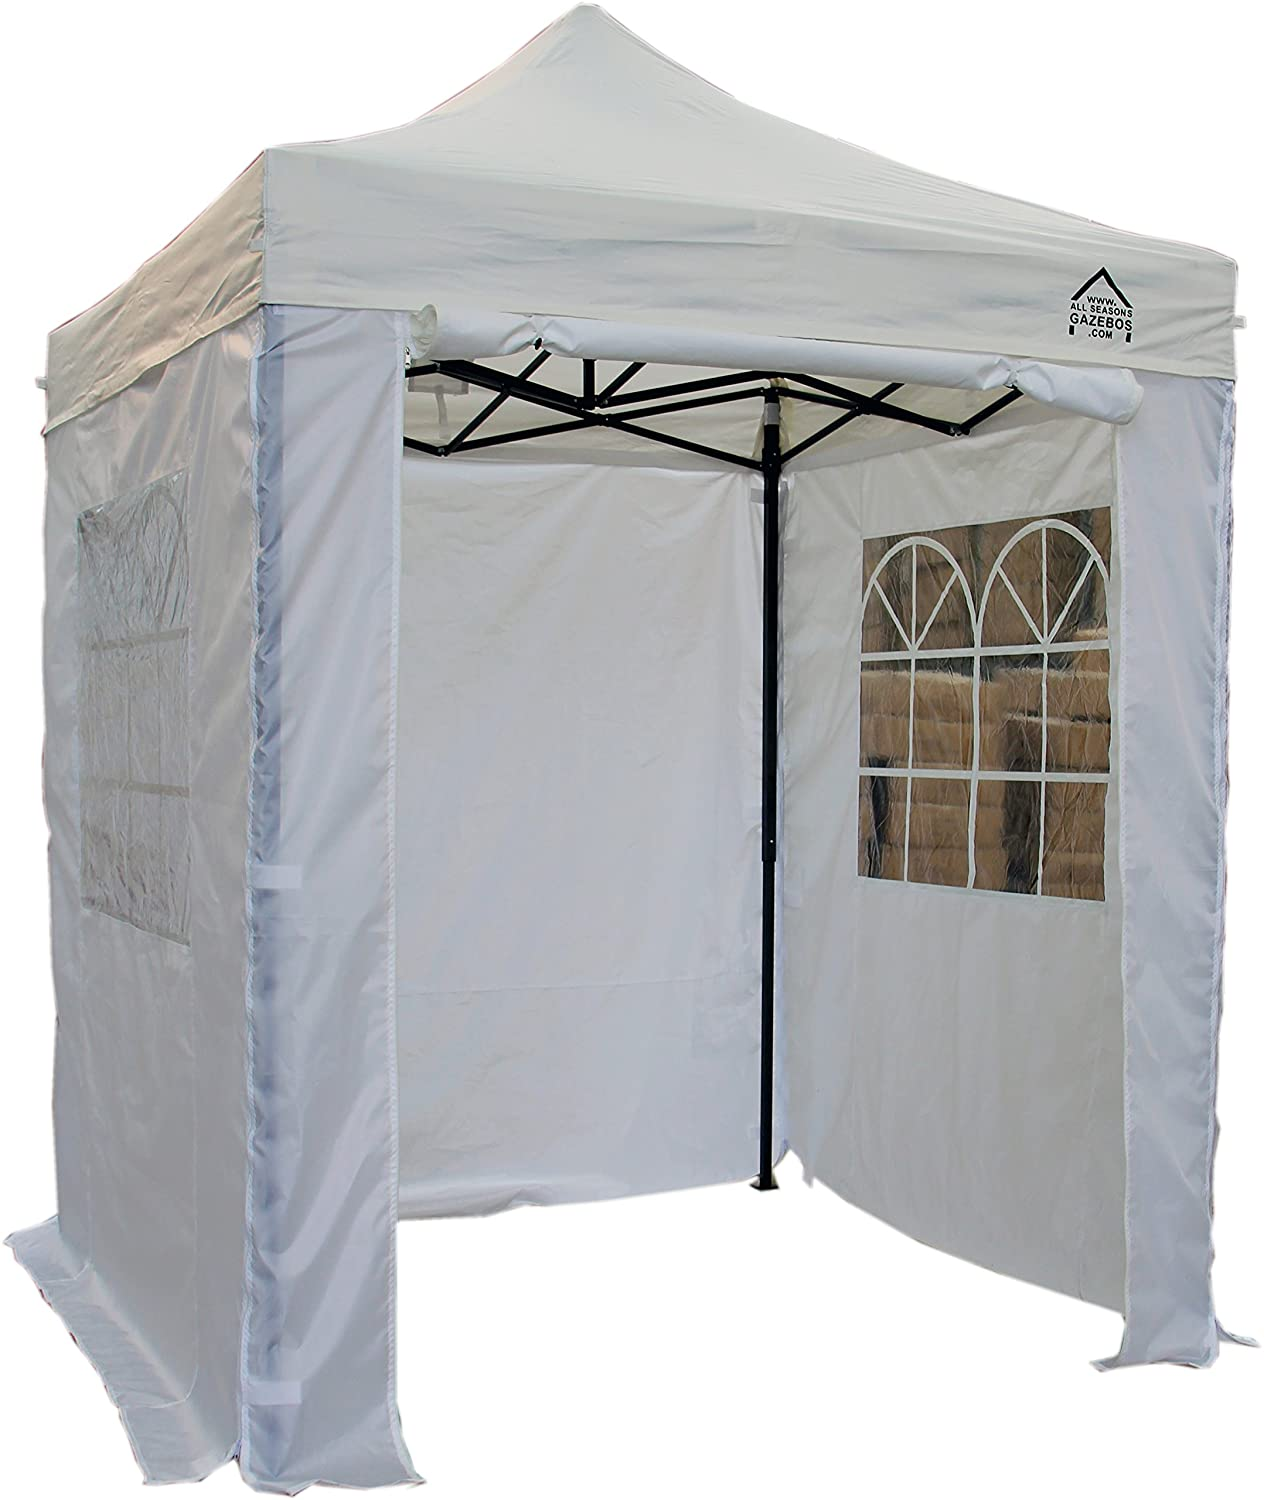 AllSeasonsGazebos Choice Of 5 Colours, 2x2m Heavy Duty, Fully Waterproof, Premium Pop Up Gazebo With 4 x Zip Up Side Panels, Carry Bag With Wheels and 4 x leg weight bags (Beige) All Seasons Gazebos